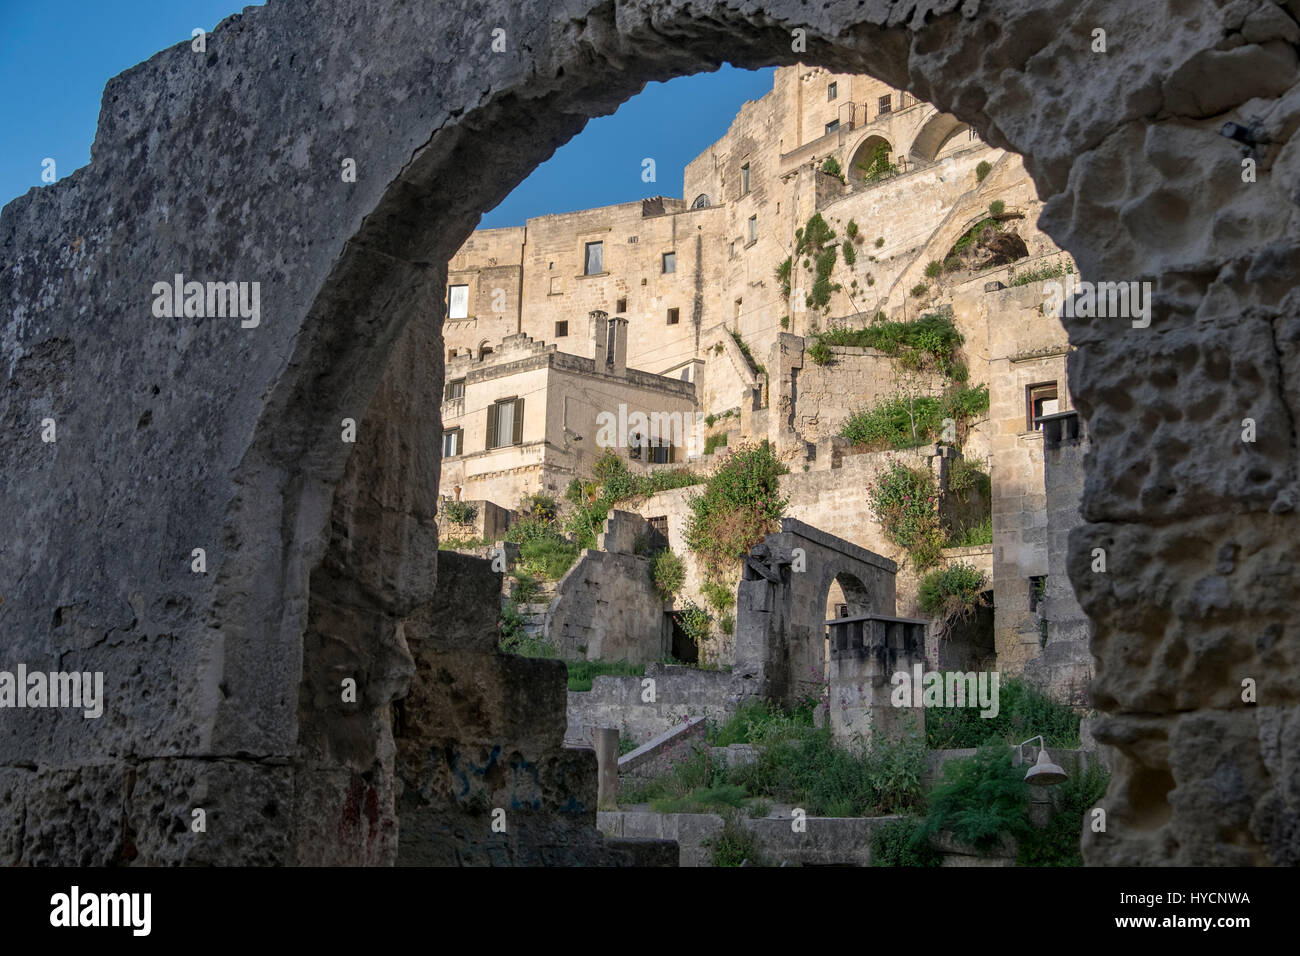 View of Matera, Italy, World Heritage Site and European Capital of Culture for 2019, as seen through a stone arch. - Stock Image